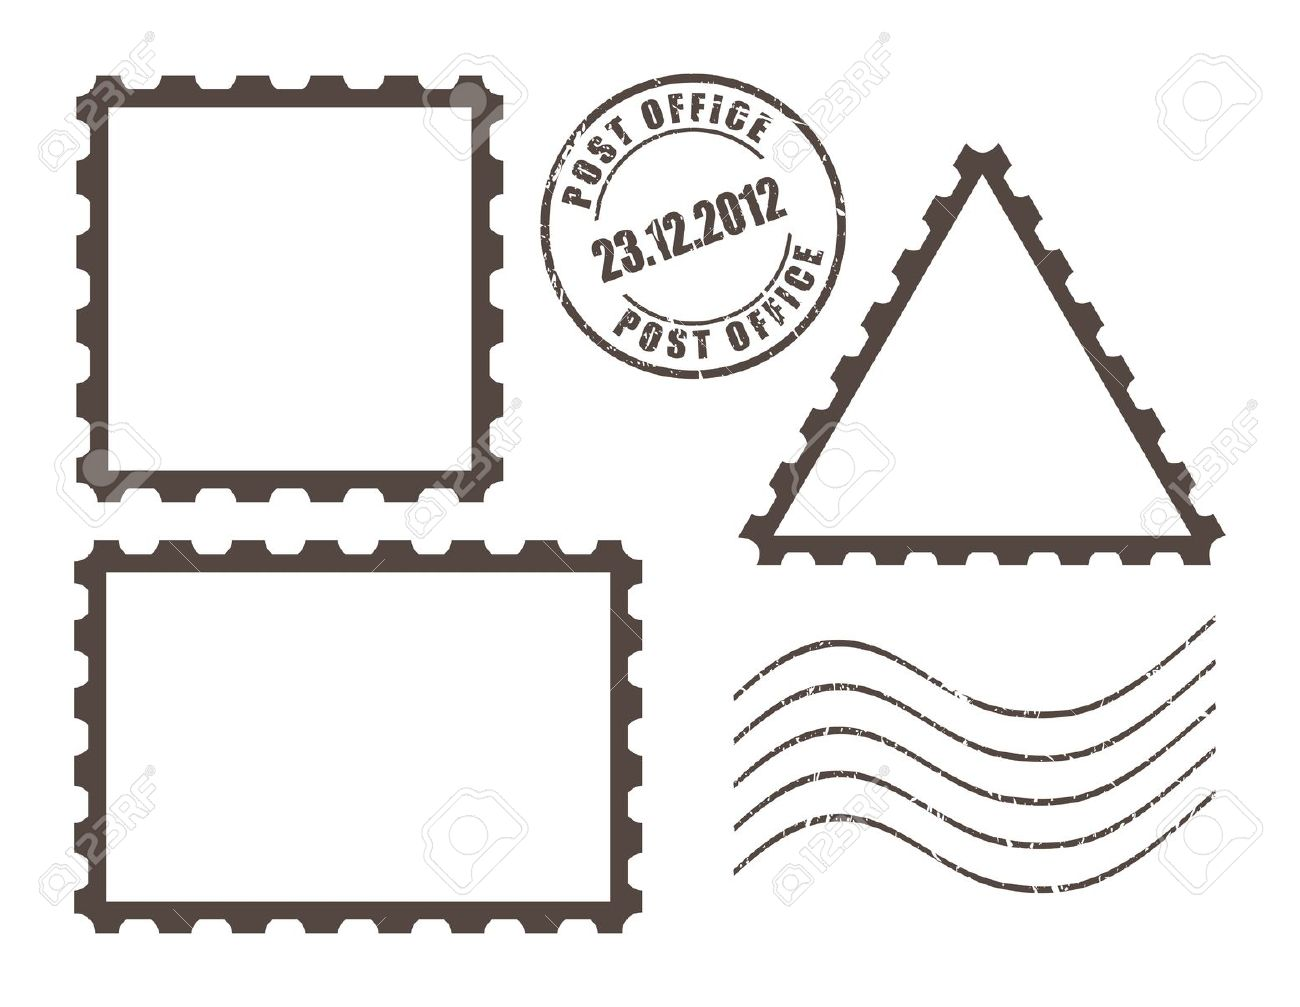 Postage Stamp Clipart Free.